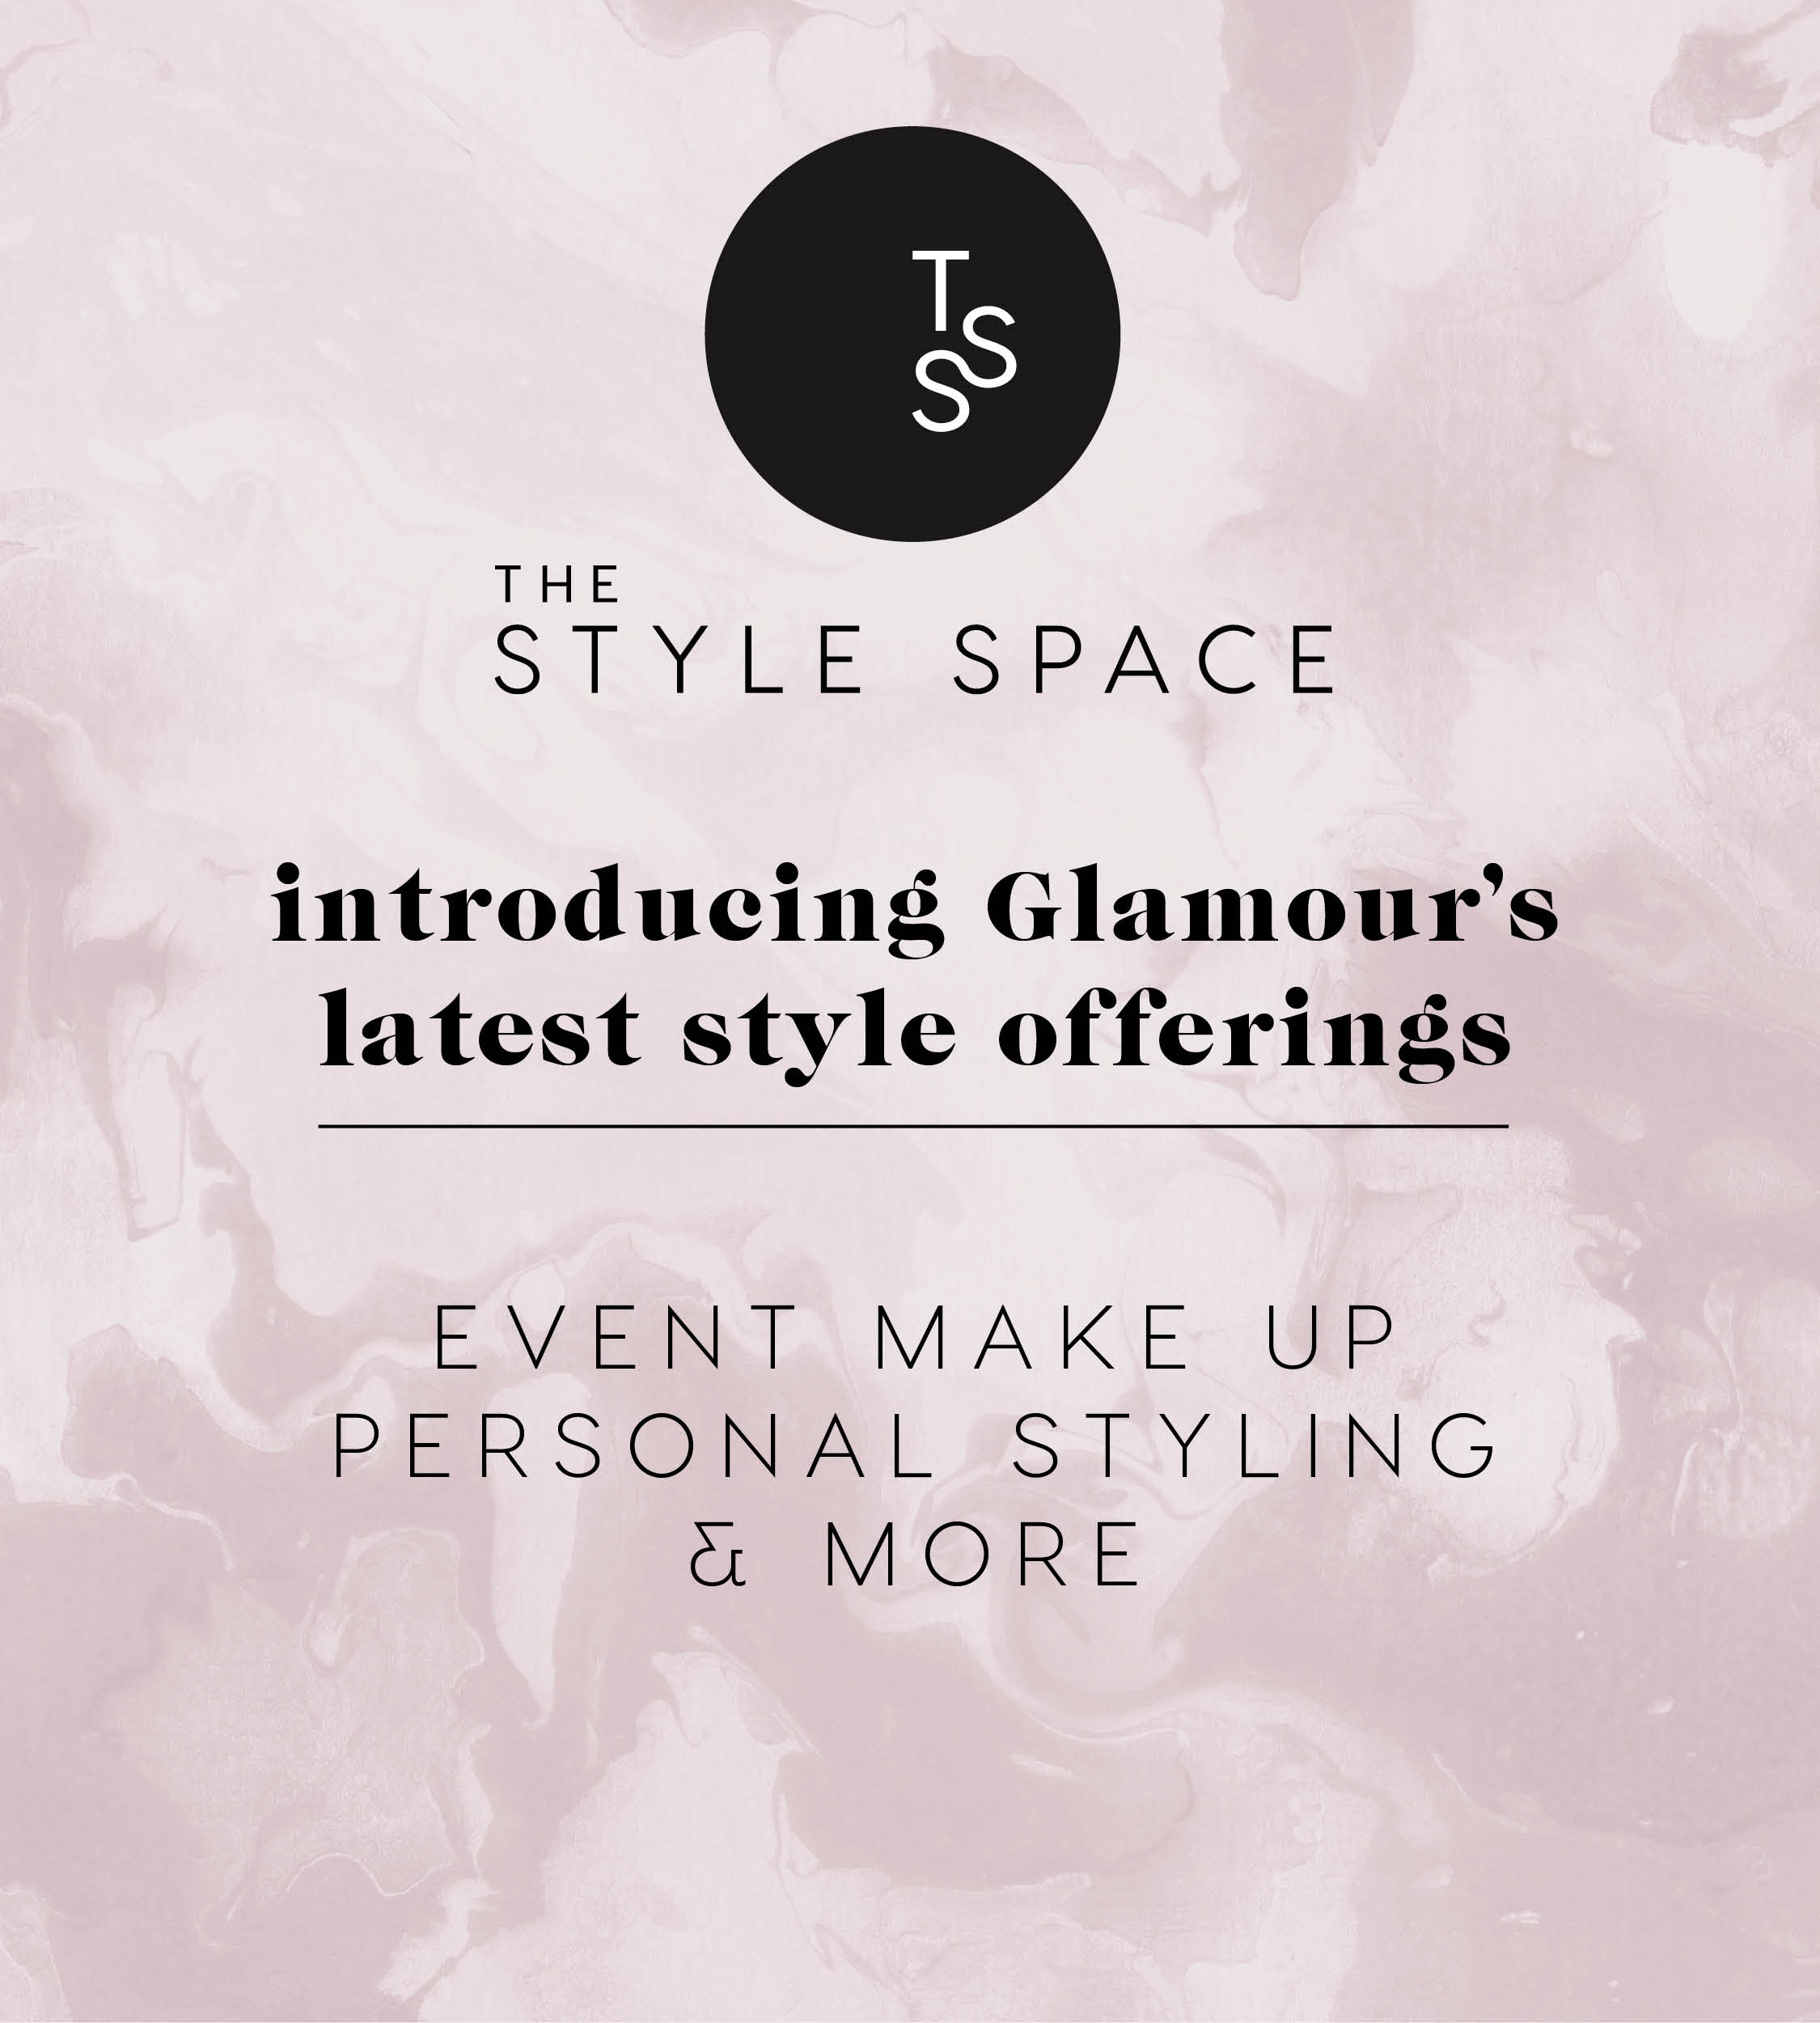 The Style Space